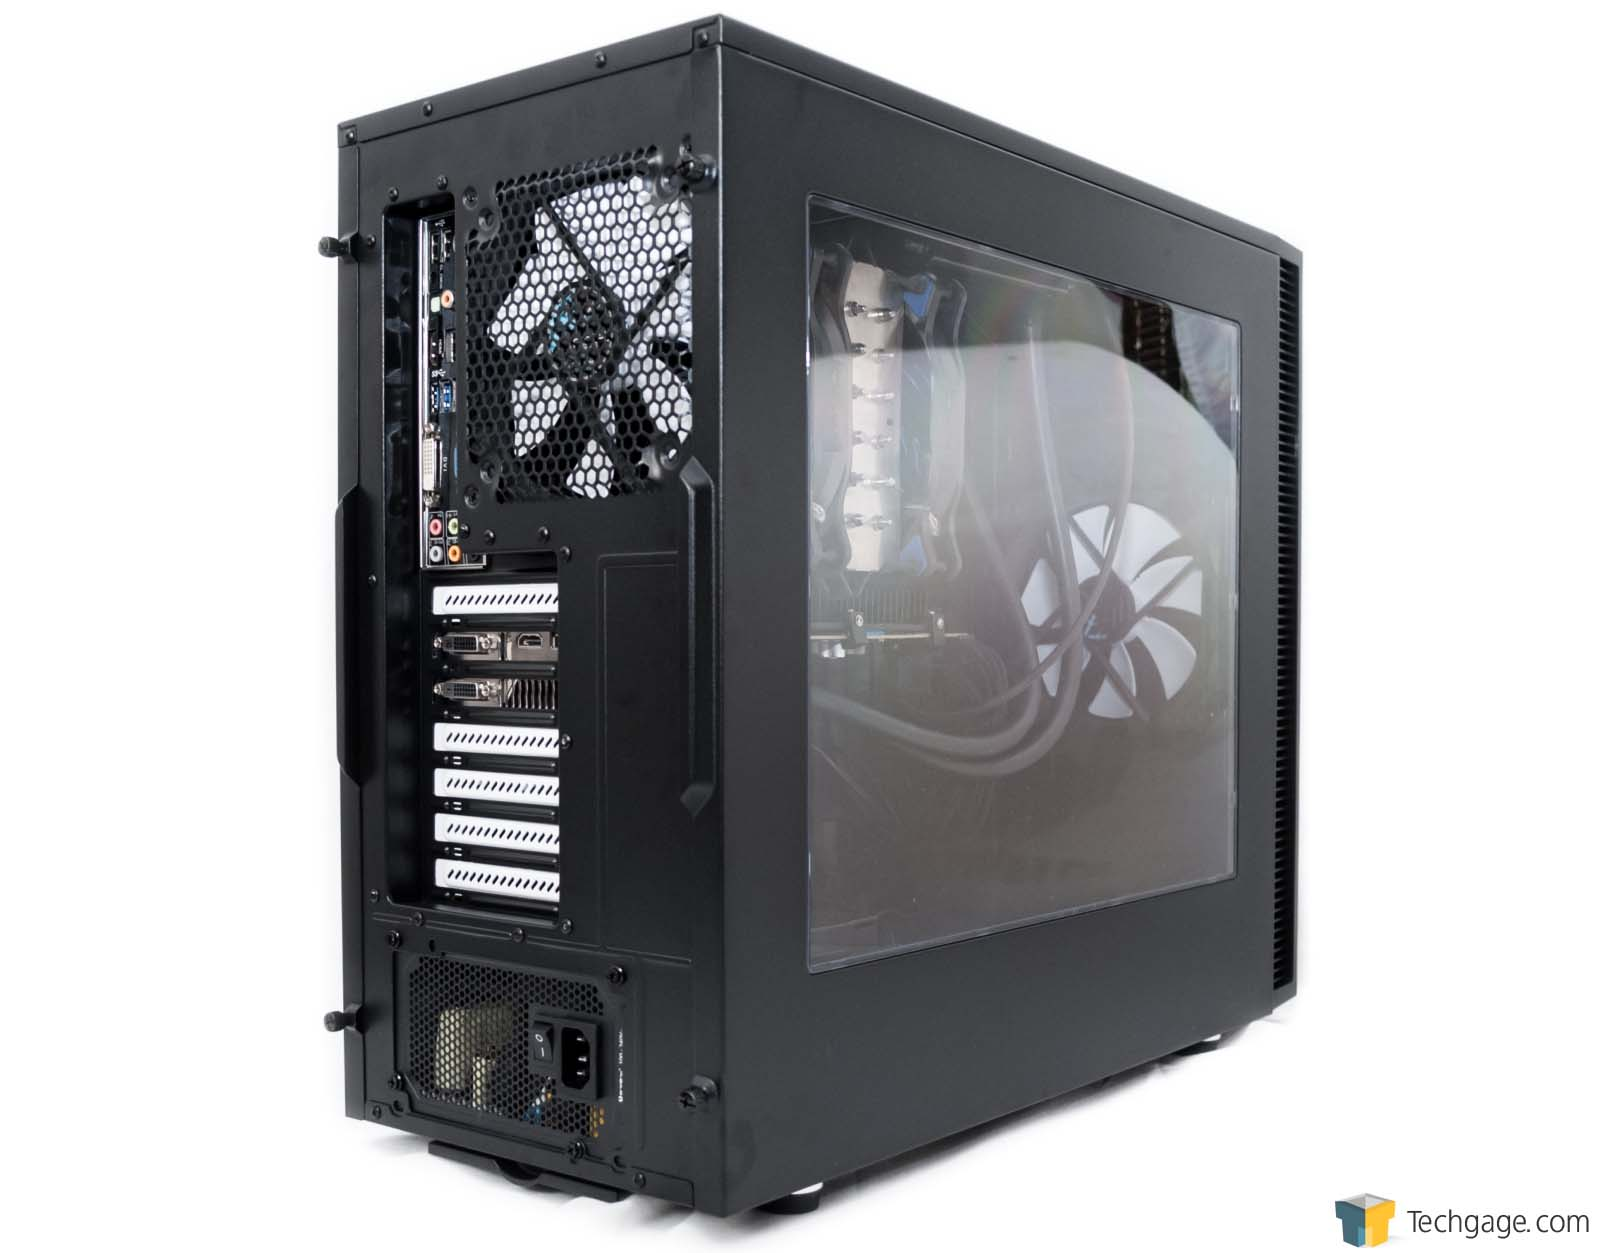 Nvidia Nvlink Gpu Scalability furthermore  in addition Maxresdefault besides Fractal Design Define S Chassis Exterior Full System Installed Back And Side Panel besides Ce A D D A Ebf E. on 3dmark